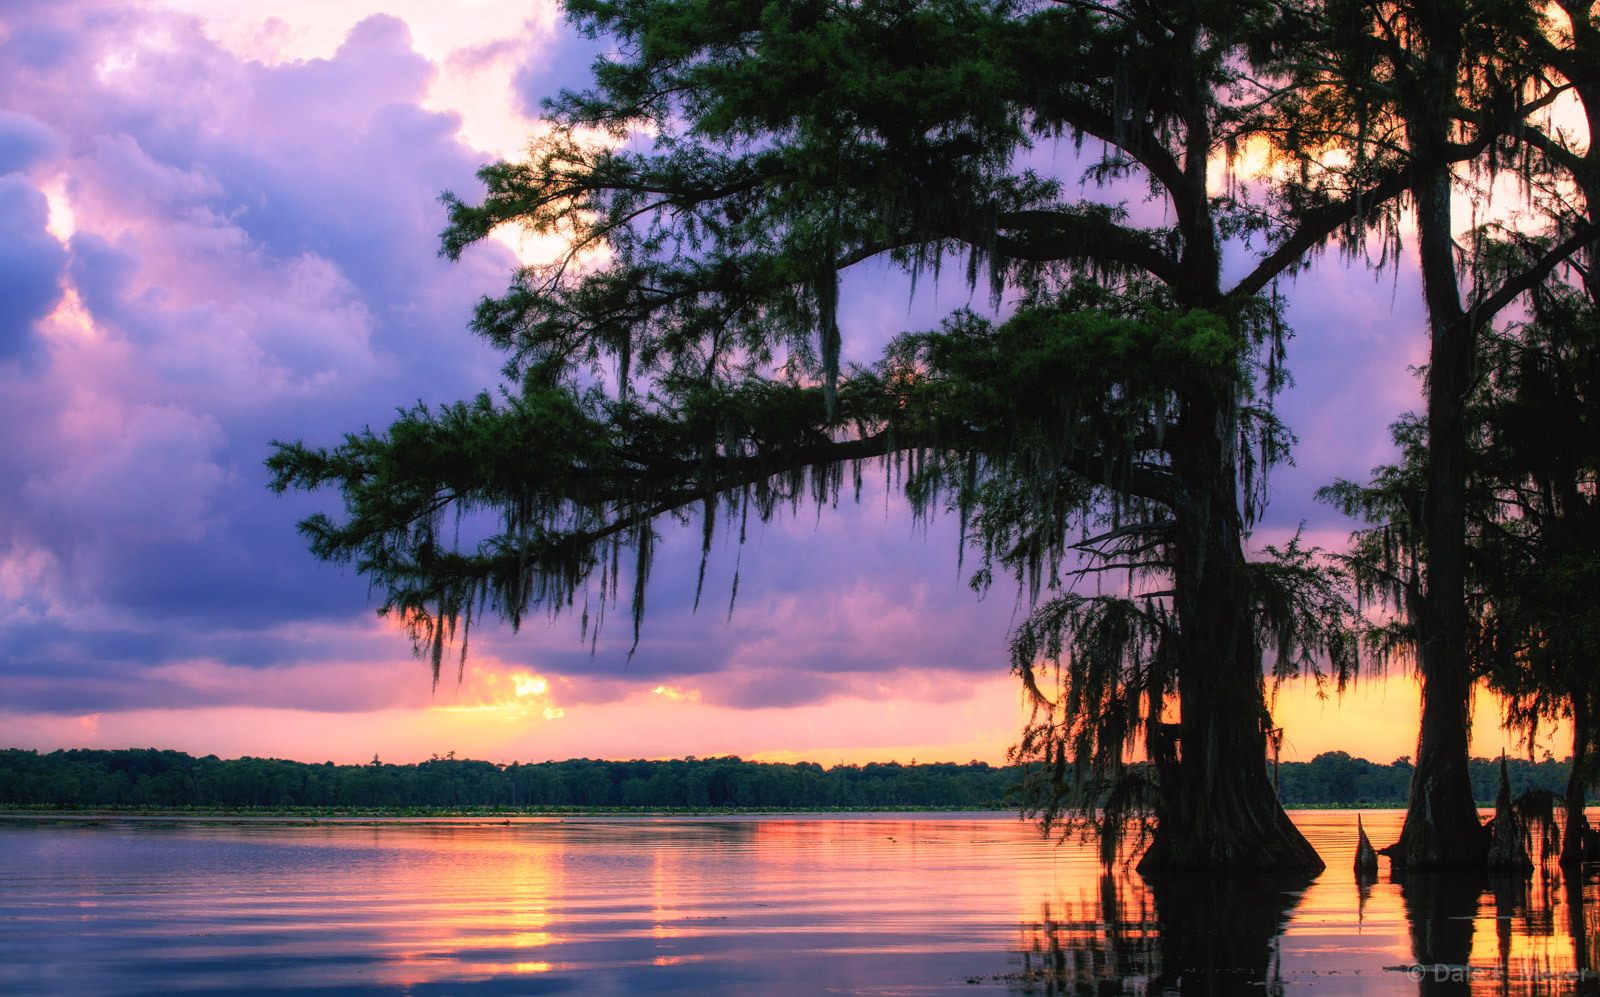 Atchafalaya River Basin Swamp, Southern Places Galerie, Summer 2016, Sunset and clouds, Swamp, cypress trees